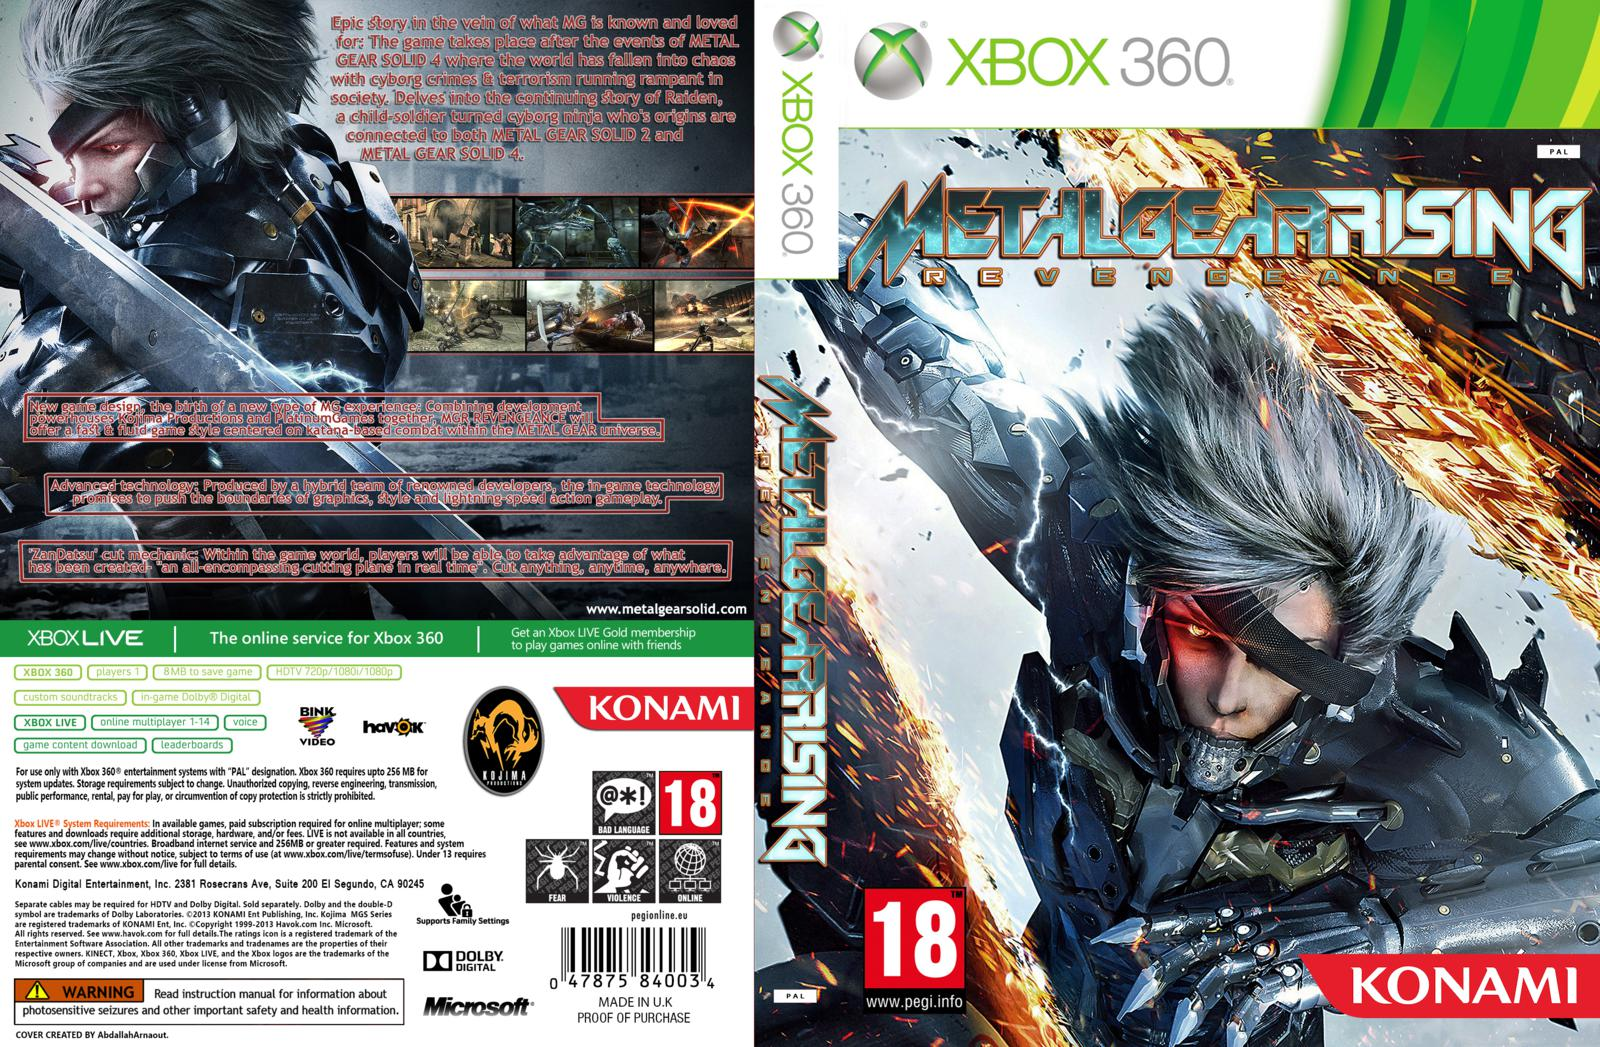 Metal gear xbox 360 - 2 day vacation deals